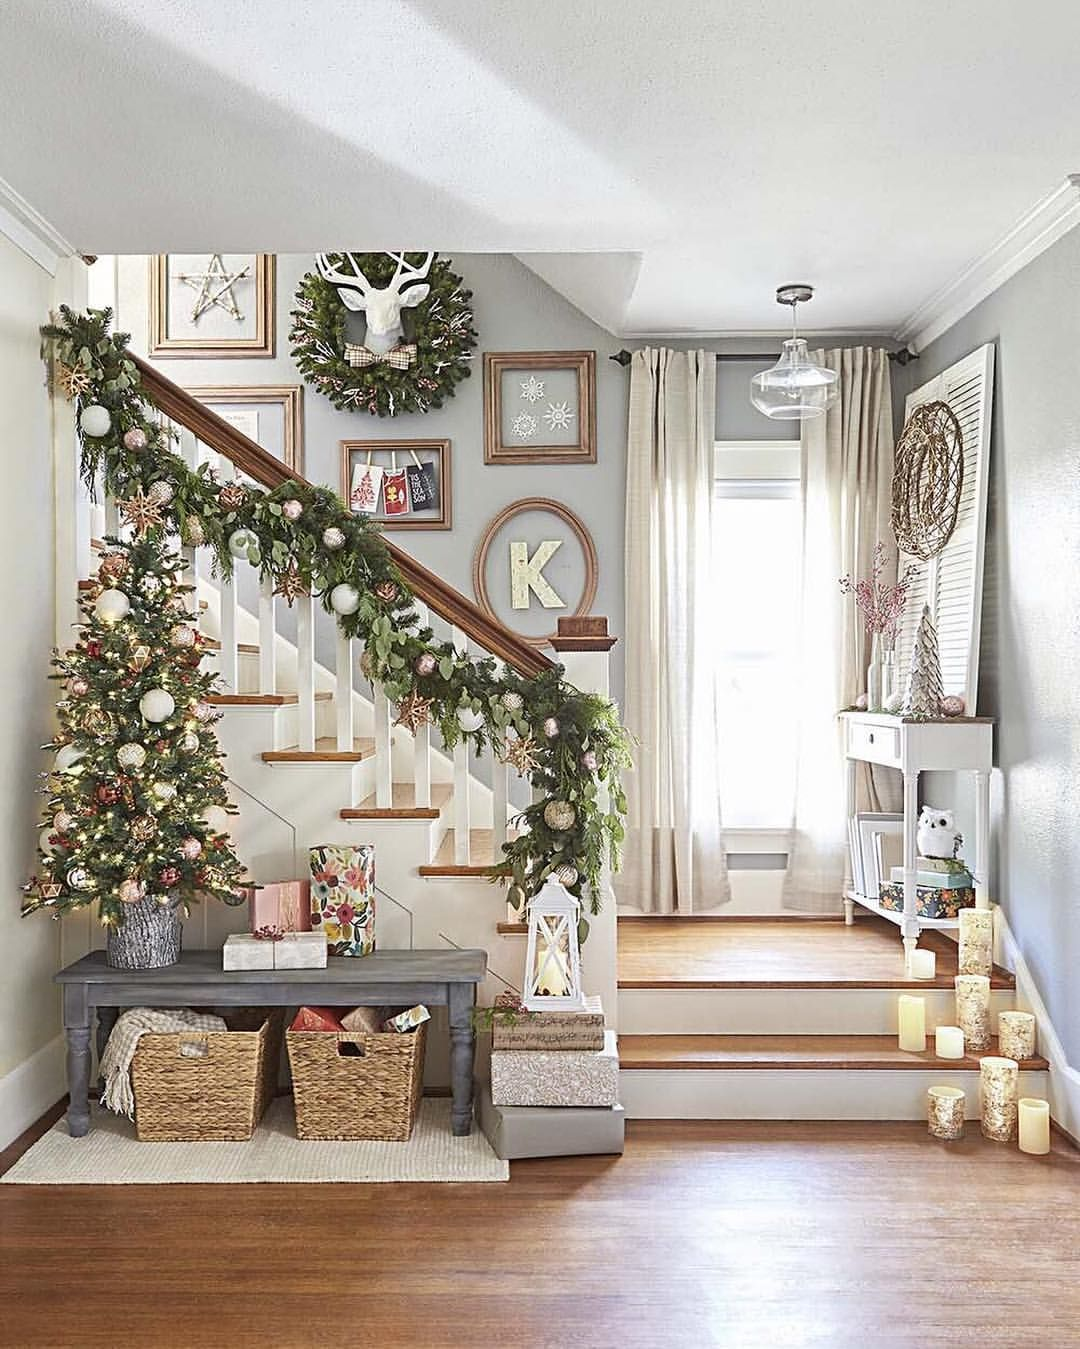 Home Decor Inspiration On Instagram How S The Christmas: Lowe's Home Improvement (@loweshomeimprovement) On